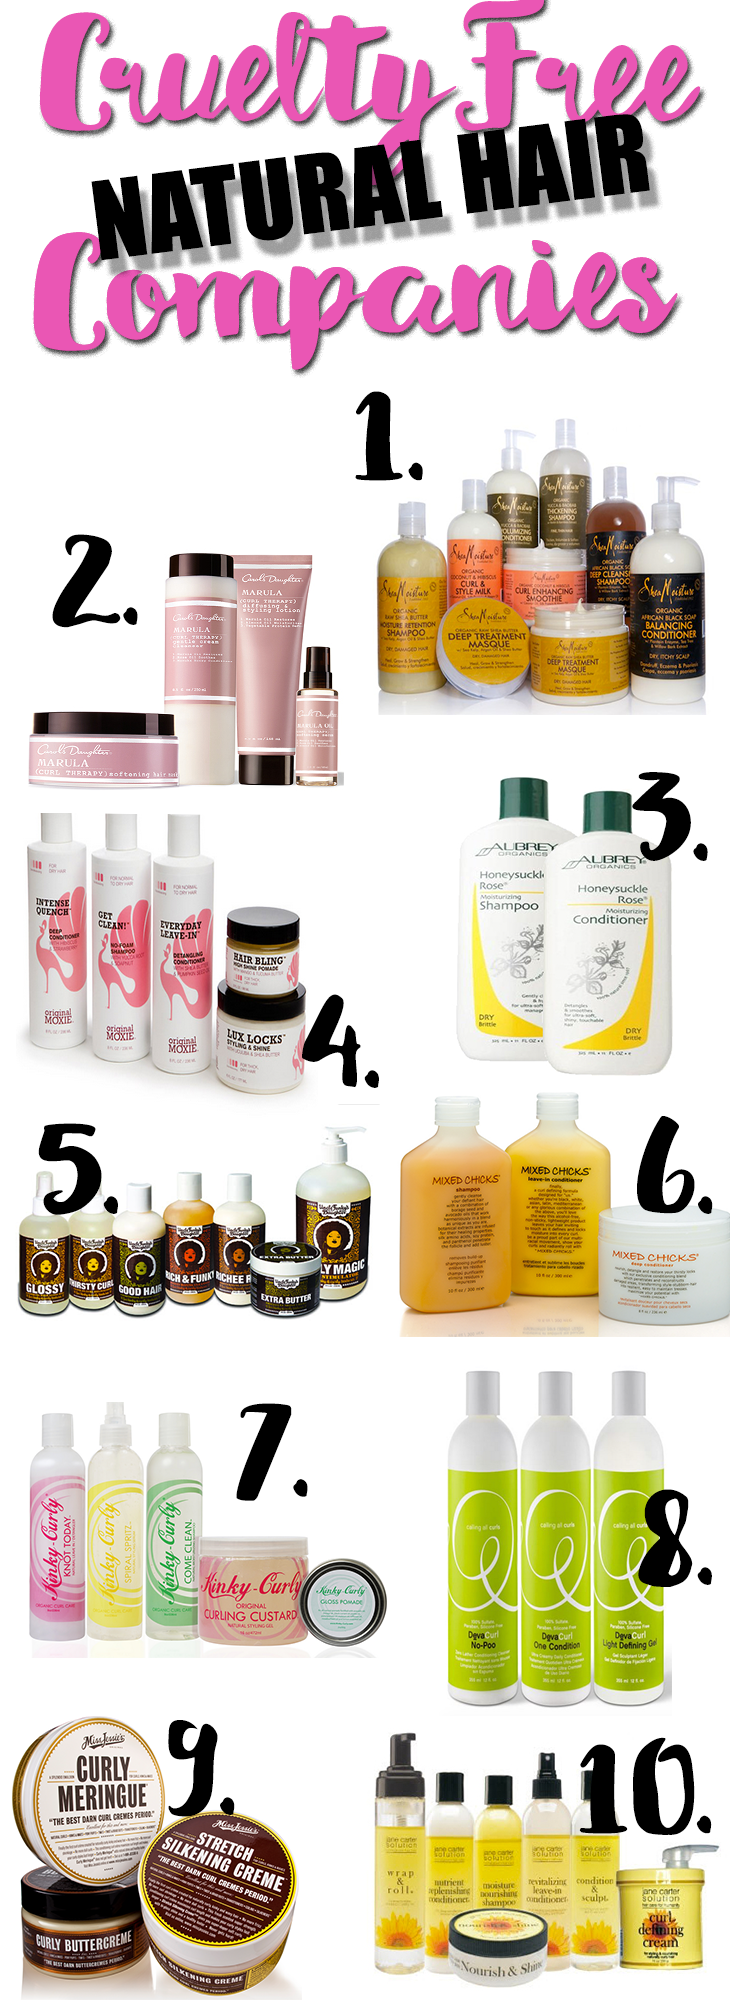 Ten Cruelty-Free Natural Hair Companies You Should Be Trying - www ...